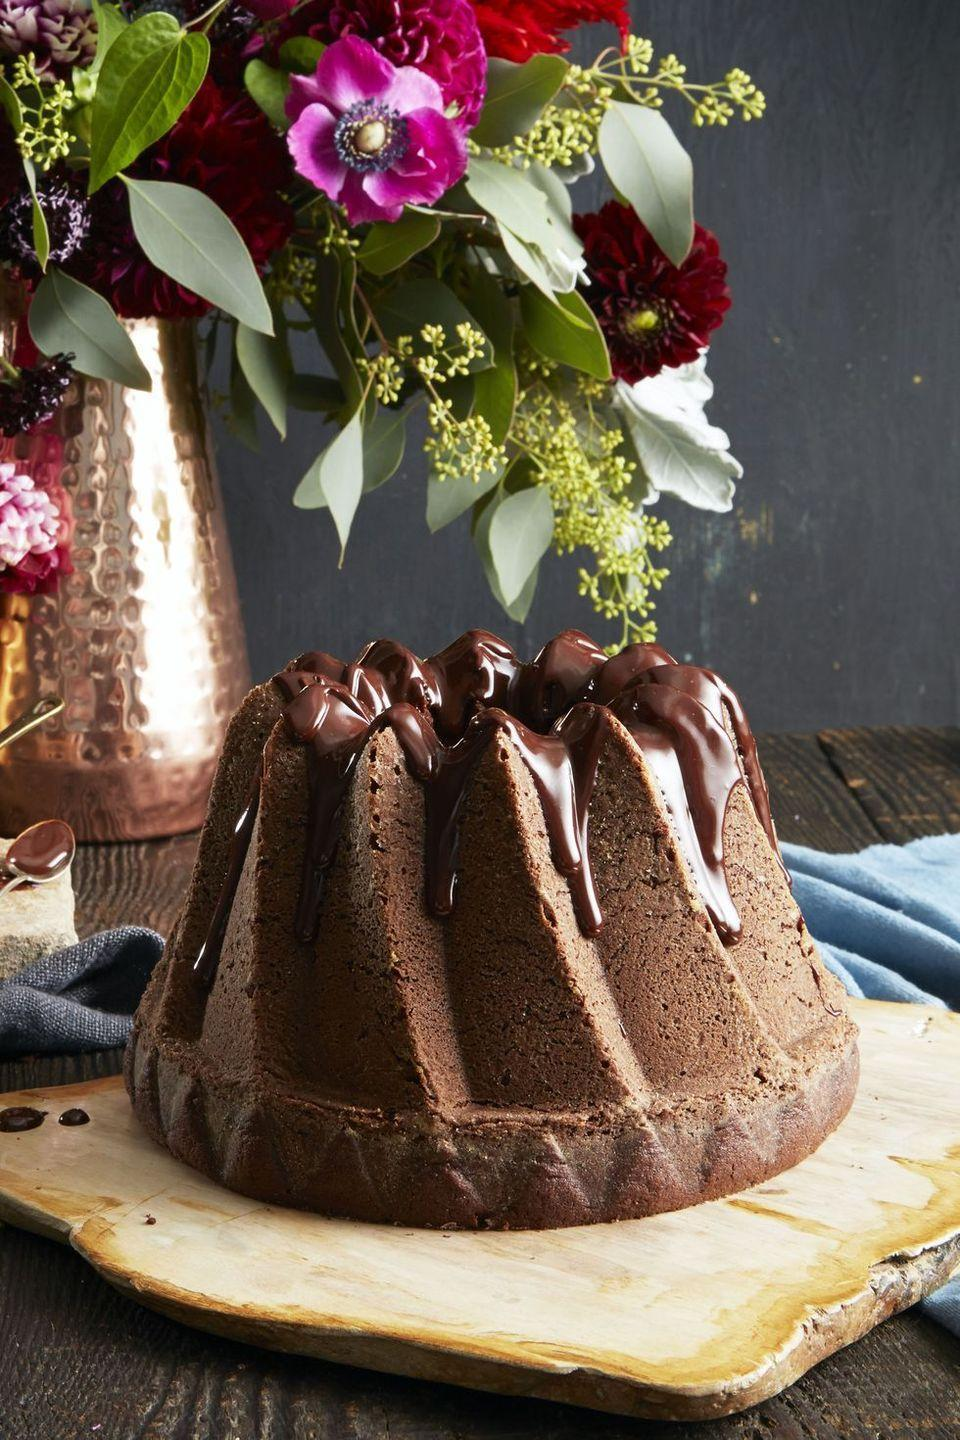 """<p>For when a single chocolate cake just isn't enough. The """"double chocolate"""" in this recipe refers to the bittersweet and creamy coffee and chocolate glaze on top of this airy chocolate cake.</p><p><em><a href=""""https://www.goodhousekeeping.com/food-recipes/dessert/a35180/double-chocolate-bundt/"""" rel=""""nofollow noopener"""" target=""""_blank"""" data-ylk=""""slk:Get the recipe for Double Chocolate Bundt »"""" class=""""link rapid-noclick-resp"""">Get the recipe for Double Chocolate Bundt » </a></em></p>"""